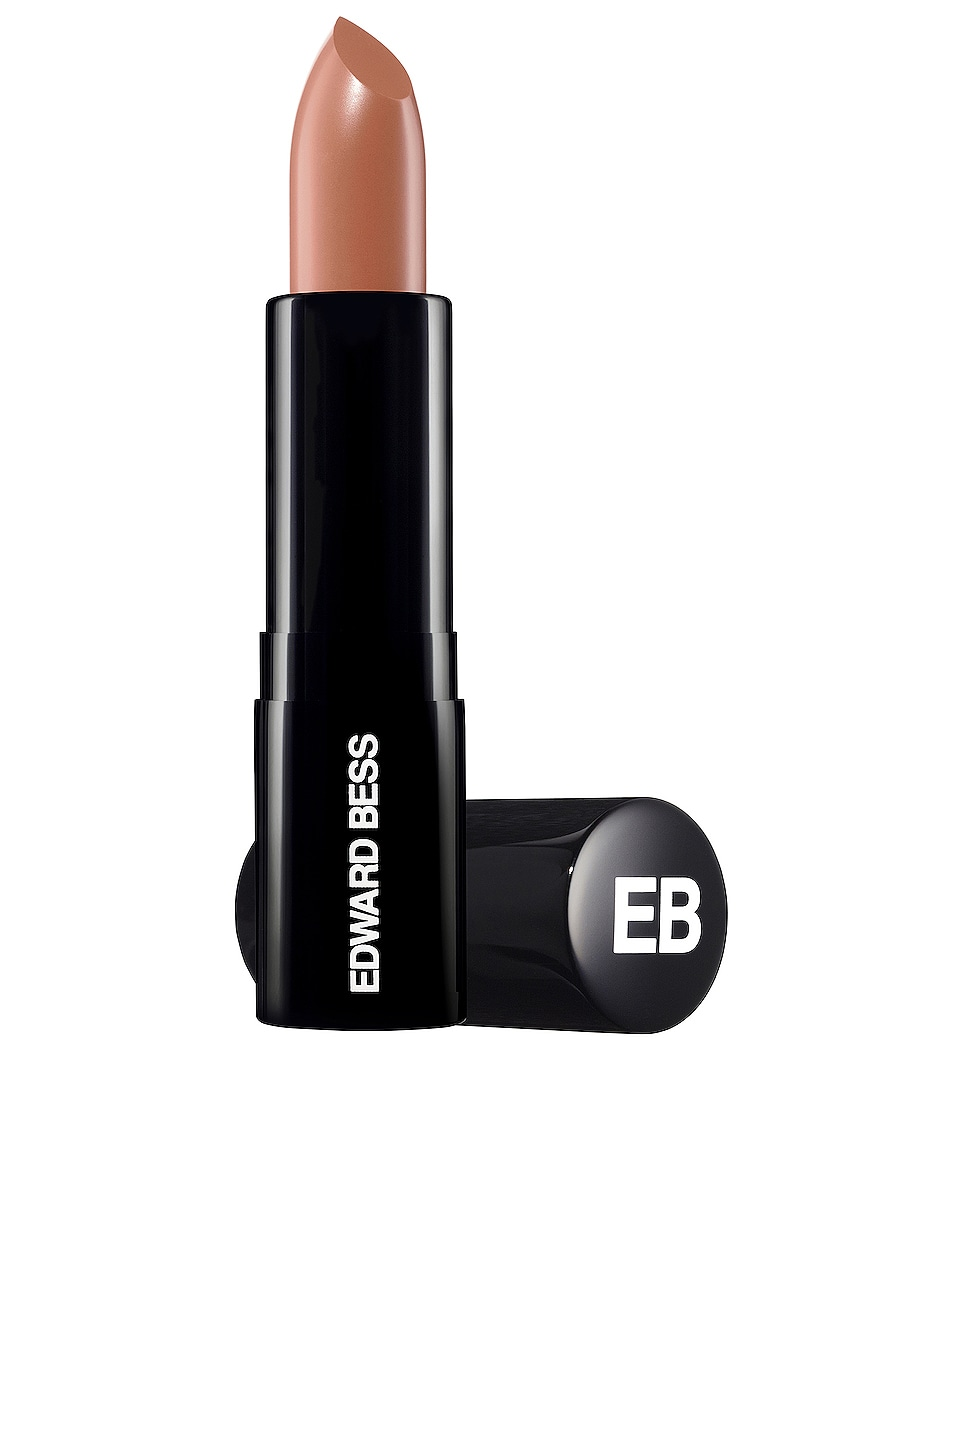 Edward Bess Ultra Slick Lipstick in Naked Blossom